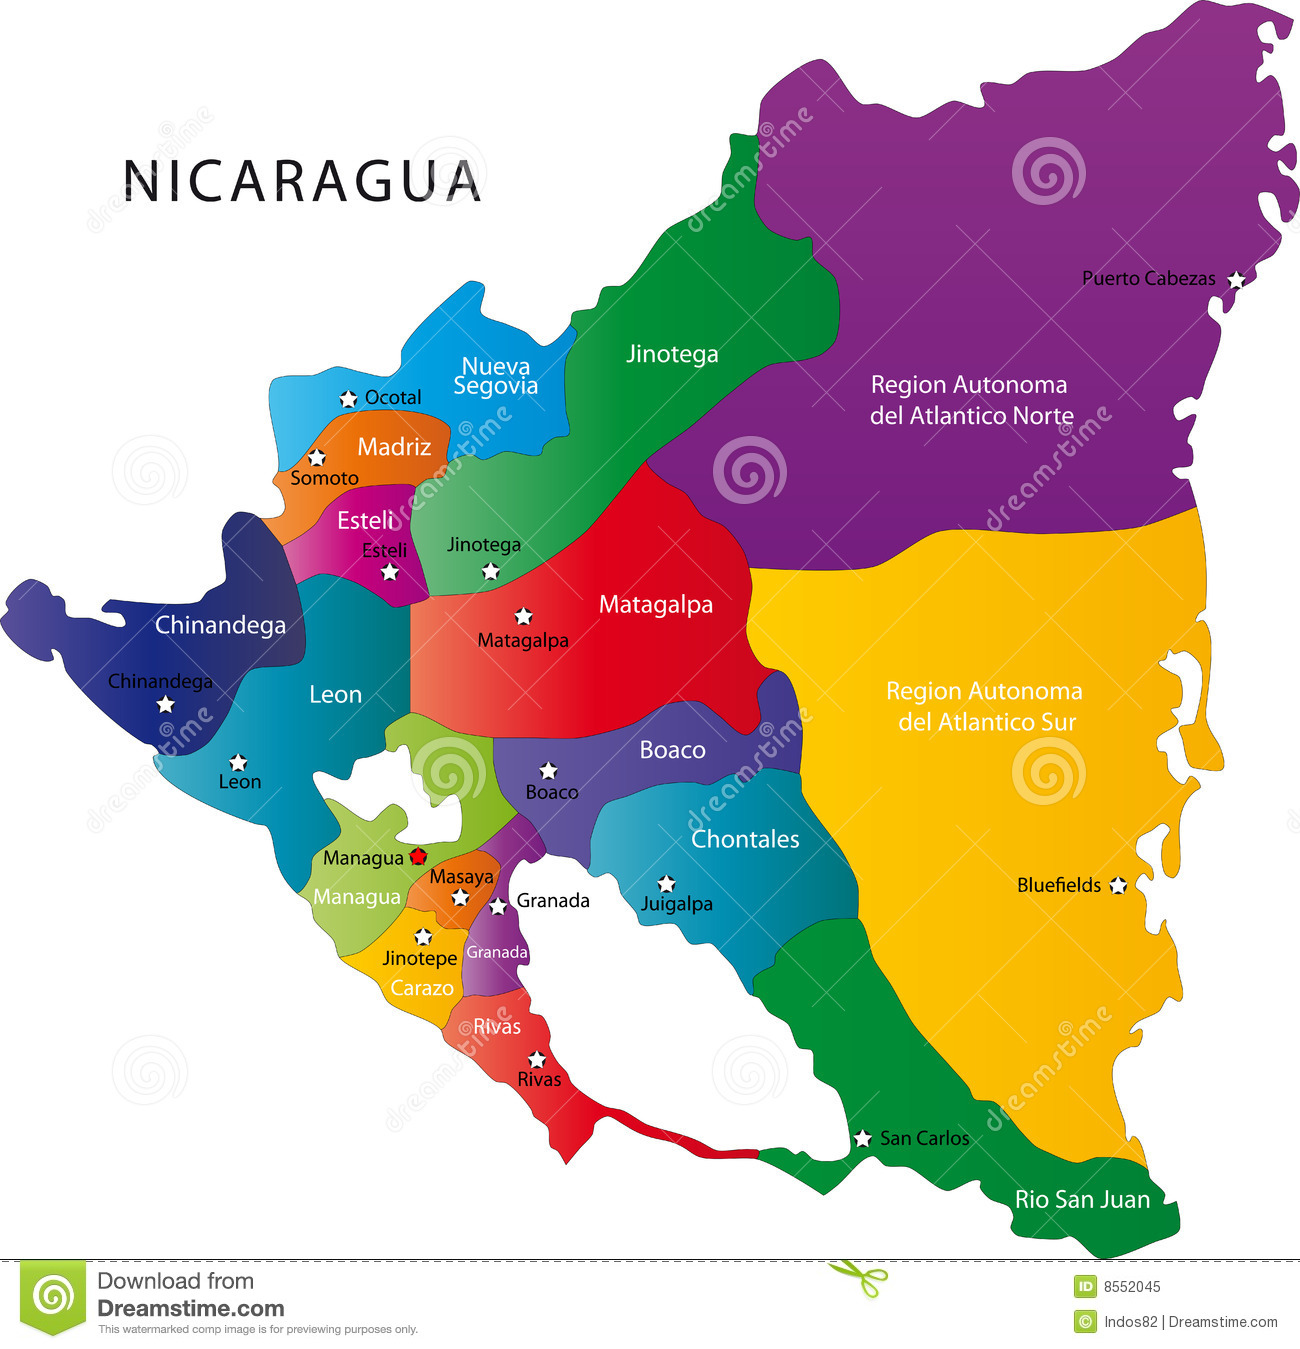 Nicaragua map stock vector. Illustration of geography - 8552045